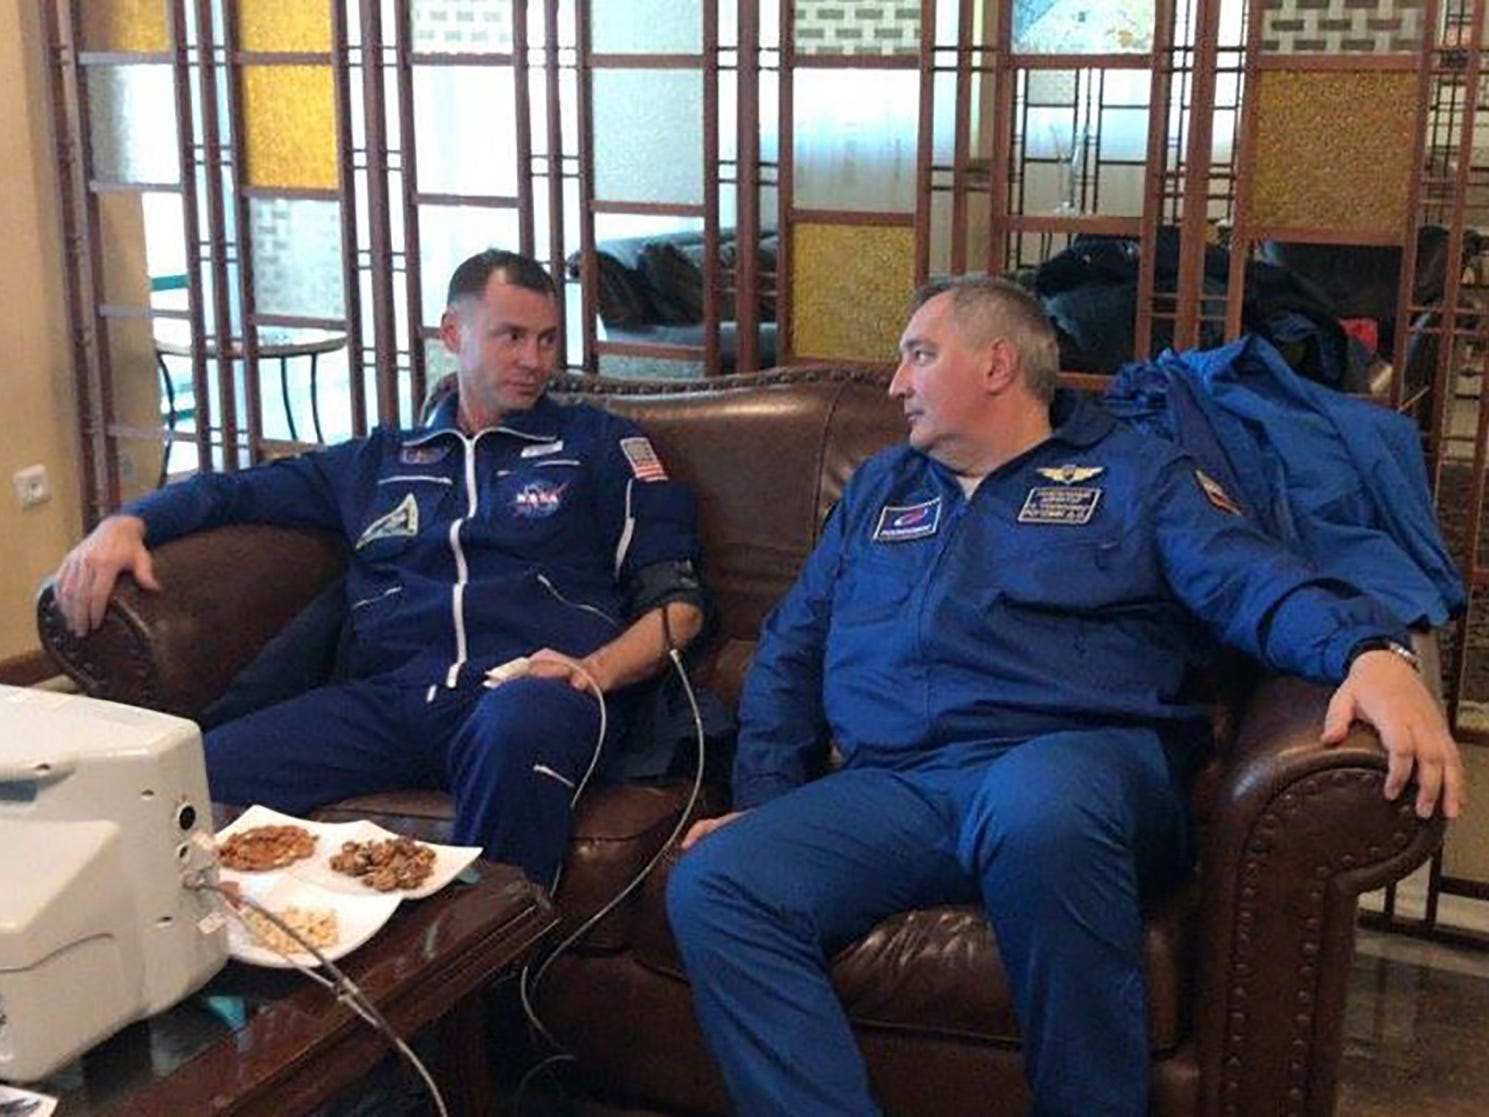 "In this handout picture released on Russia's space agency Roscosmos Twitter account on October 11, 2018, NASA astronaut Nick Hague undergoes medical examination in the town of Dzhezkazgan (Zhezkazgan), Kazakhstan. - The two-man crew of a Soyuz rocket made a successful emergency landing Thursday after an engine problem on lift-off to the International Space Station, in a major setback for the beleaguered Russian space industry. Hague and Russian Ovchinin were rescued without injuries in Kazakhstan. (Photo by HO / Russian Space Agency Roscosmos / AFP) / RESTRICTED TO EDITORIAL USE - MANDATORY CREDIT ""AFP PHOTO / Russia's space agency Roscosmos Twitter account / HO"" - NO MARKETING NO ADVERTISING CAMPAIGNS - DISTRIBUTED AS A SERVICE TO CLIENTSHO/AFP/Getty Images ORIG FILE ID: AFP_19Y0LK"